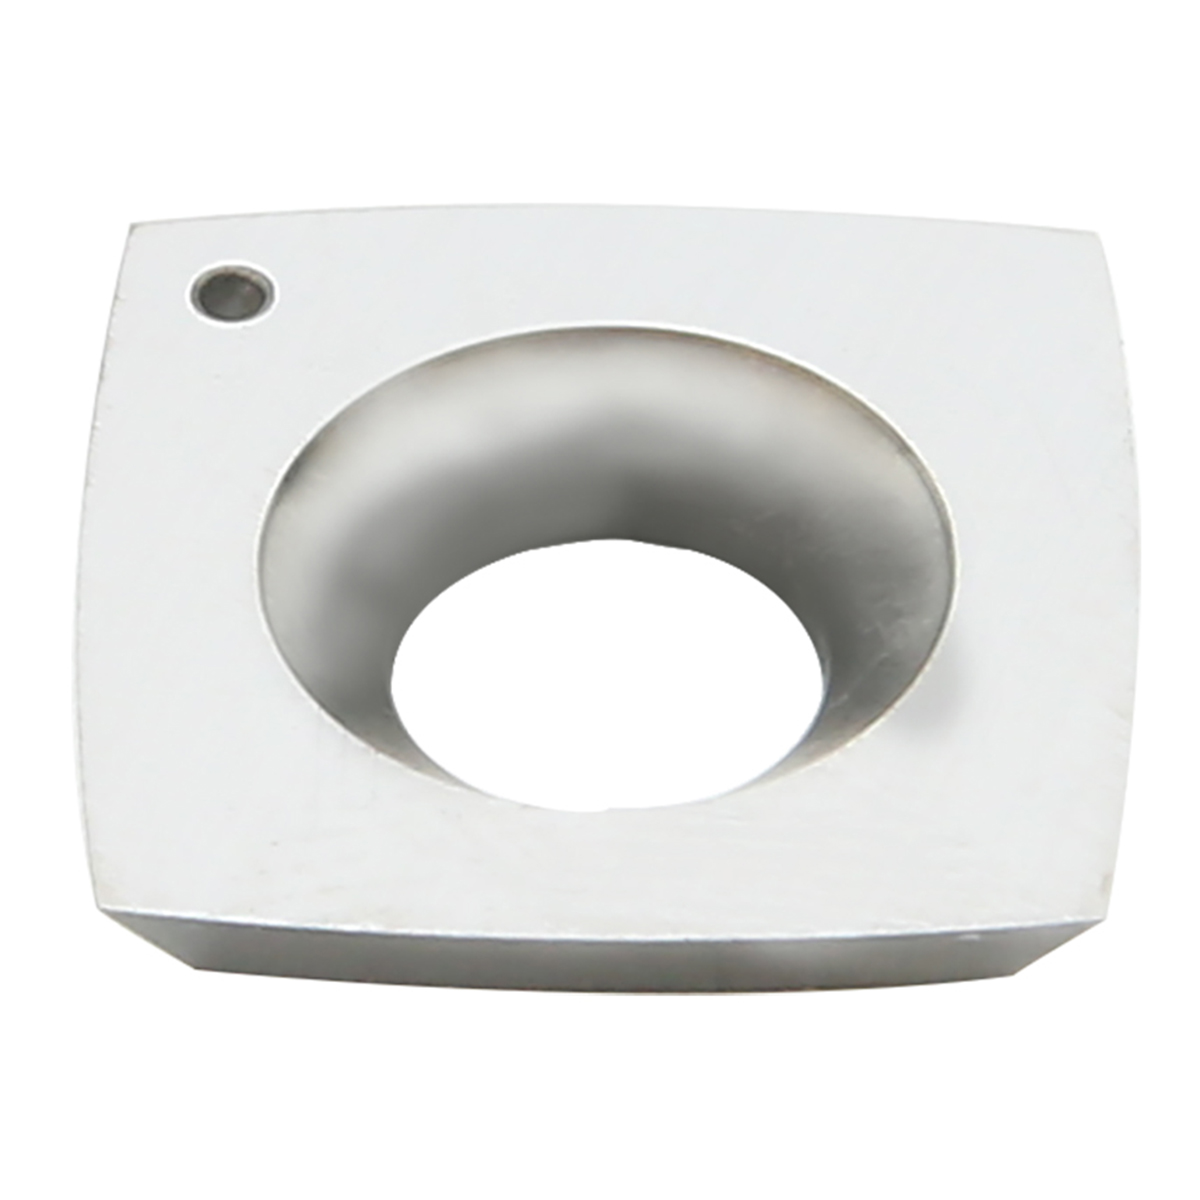 """1pc 2"""" Face Radius Carbide Insert 4-Edge Square Inserts Durable CNC Lathe Turning Cutter for Chipboard Plywood Wood Working"""